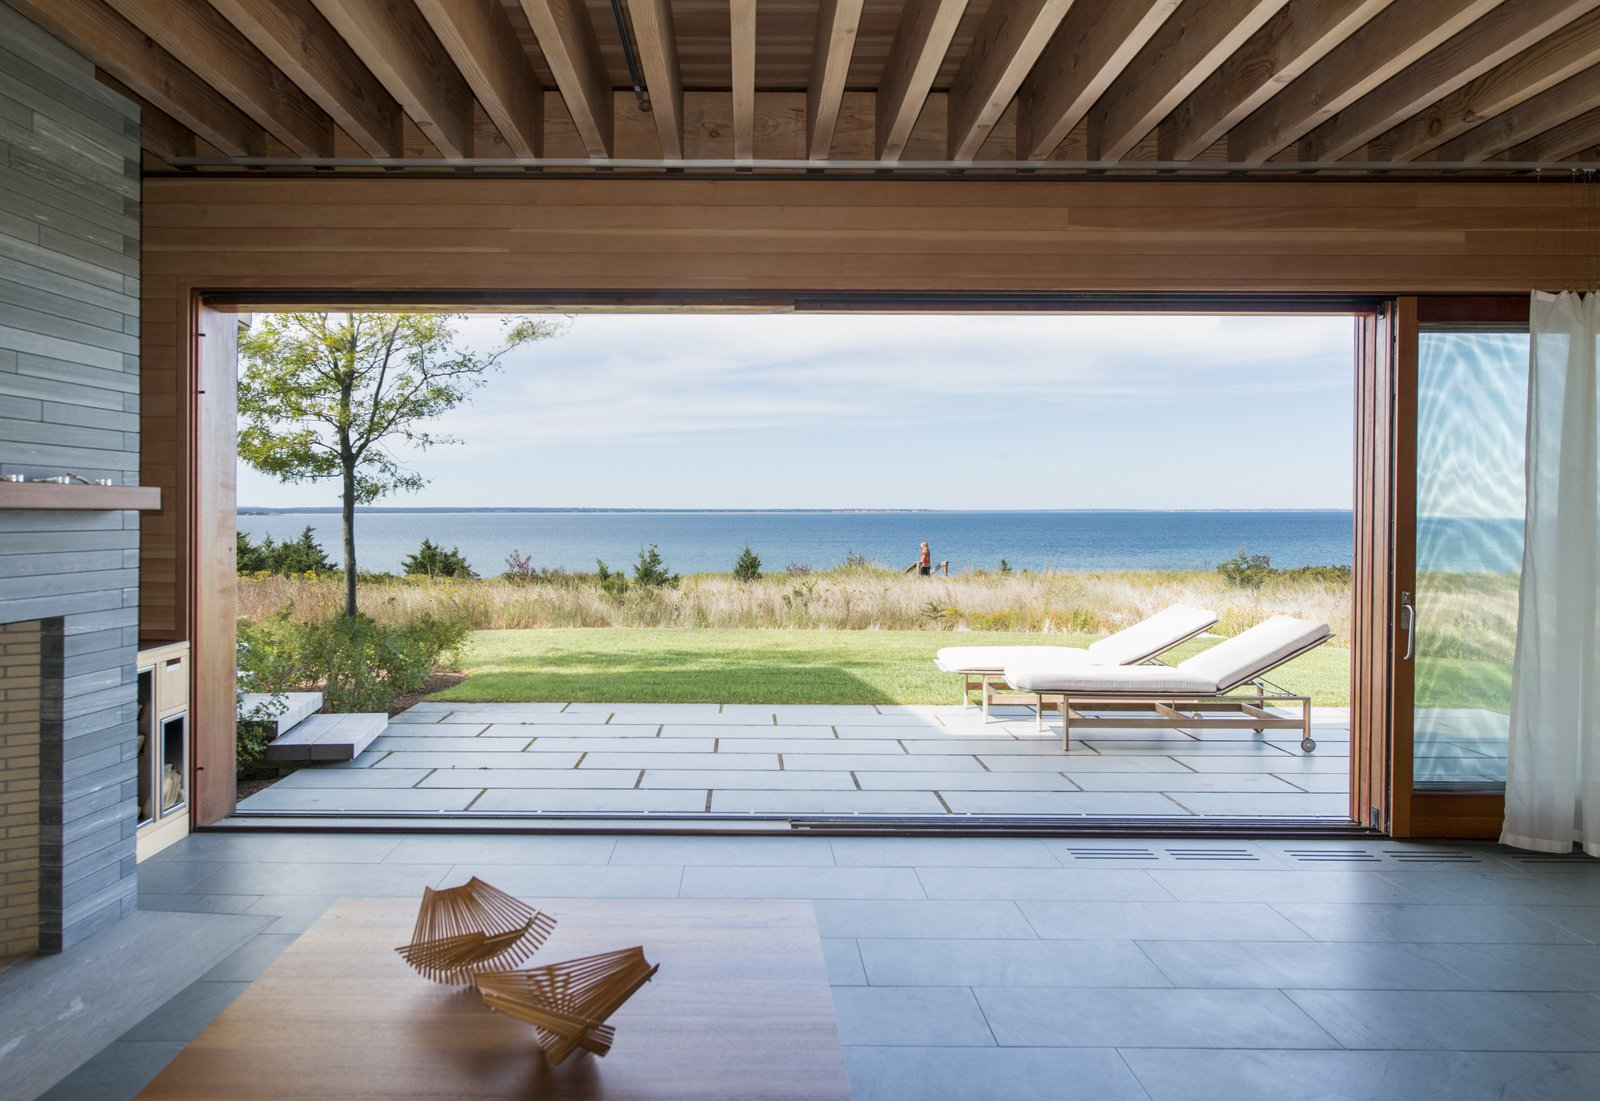 To further connect the indoor spaces with the New England landscape outside, glass walls in the living and dining areas slide open to eliminate the barriers between indoors and outdoors. Green slate tiles compose the flooring inside. Tagged: Doors and Sliding Door Type.  Photo 4 of 8 in New England Vacation Home Emphasizes Island Breeze and Spectacular Views